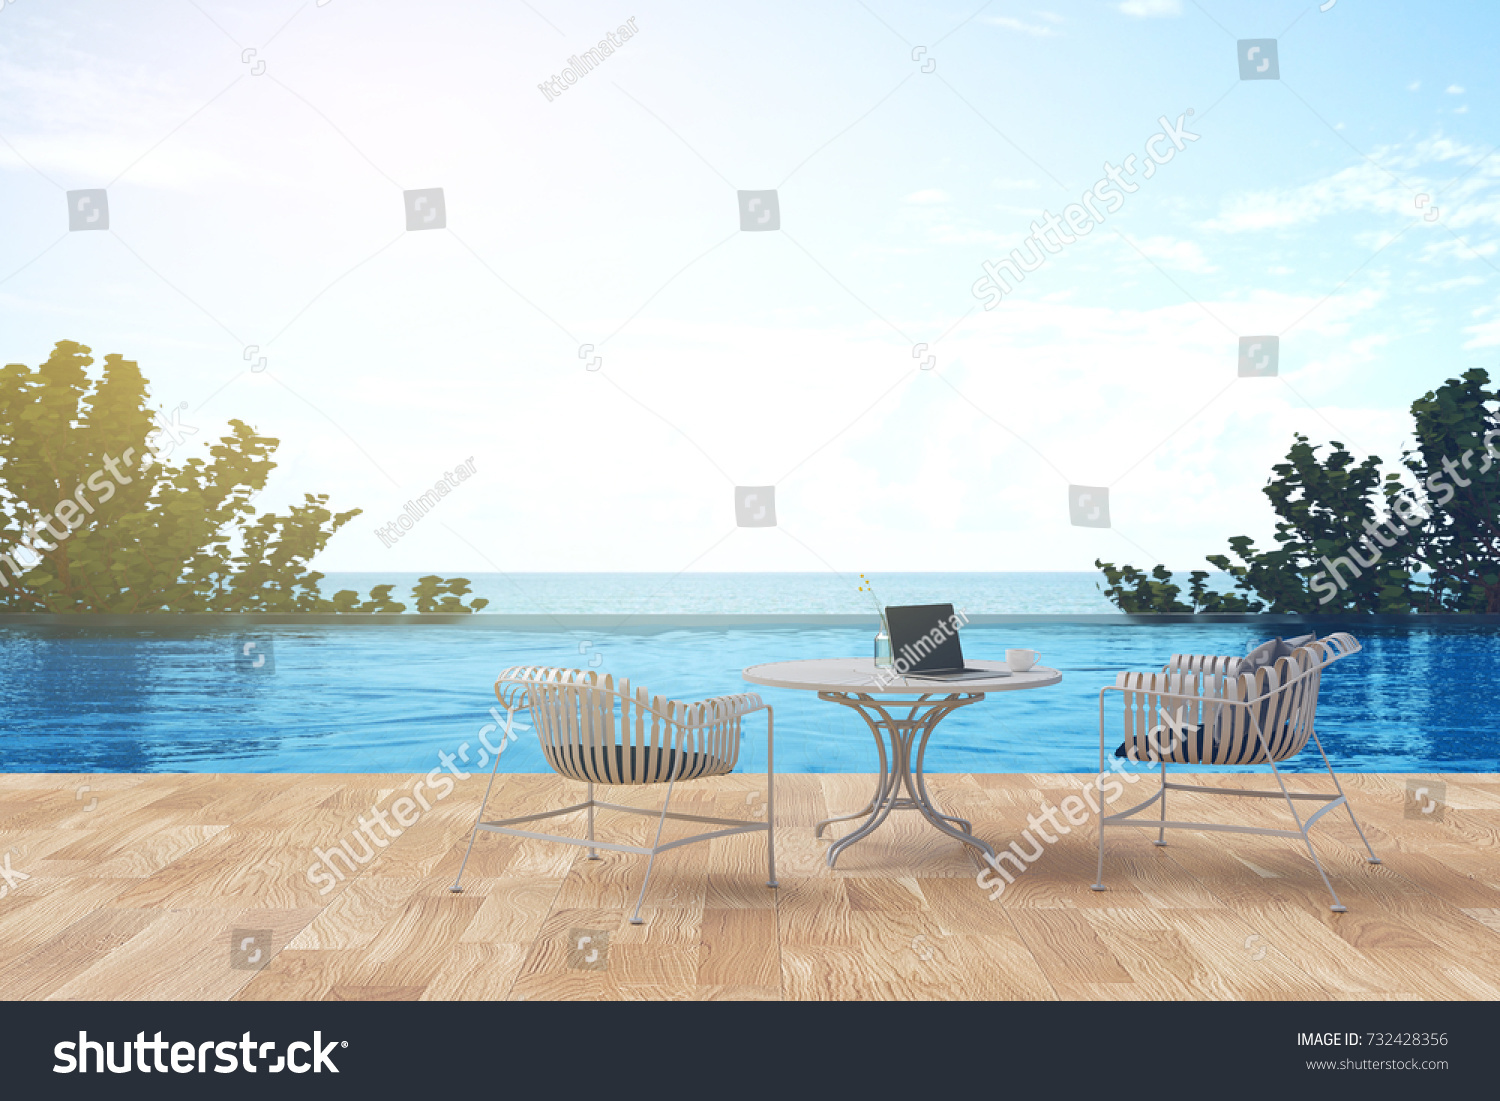 3D Rendering : Illustration Of A Beach Patio Outdoor. Sun Loungers On  Private Deck And